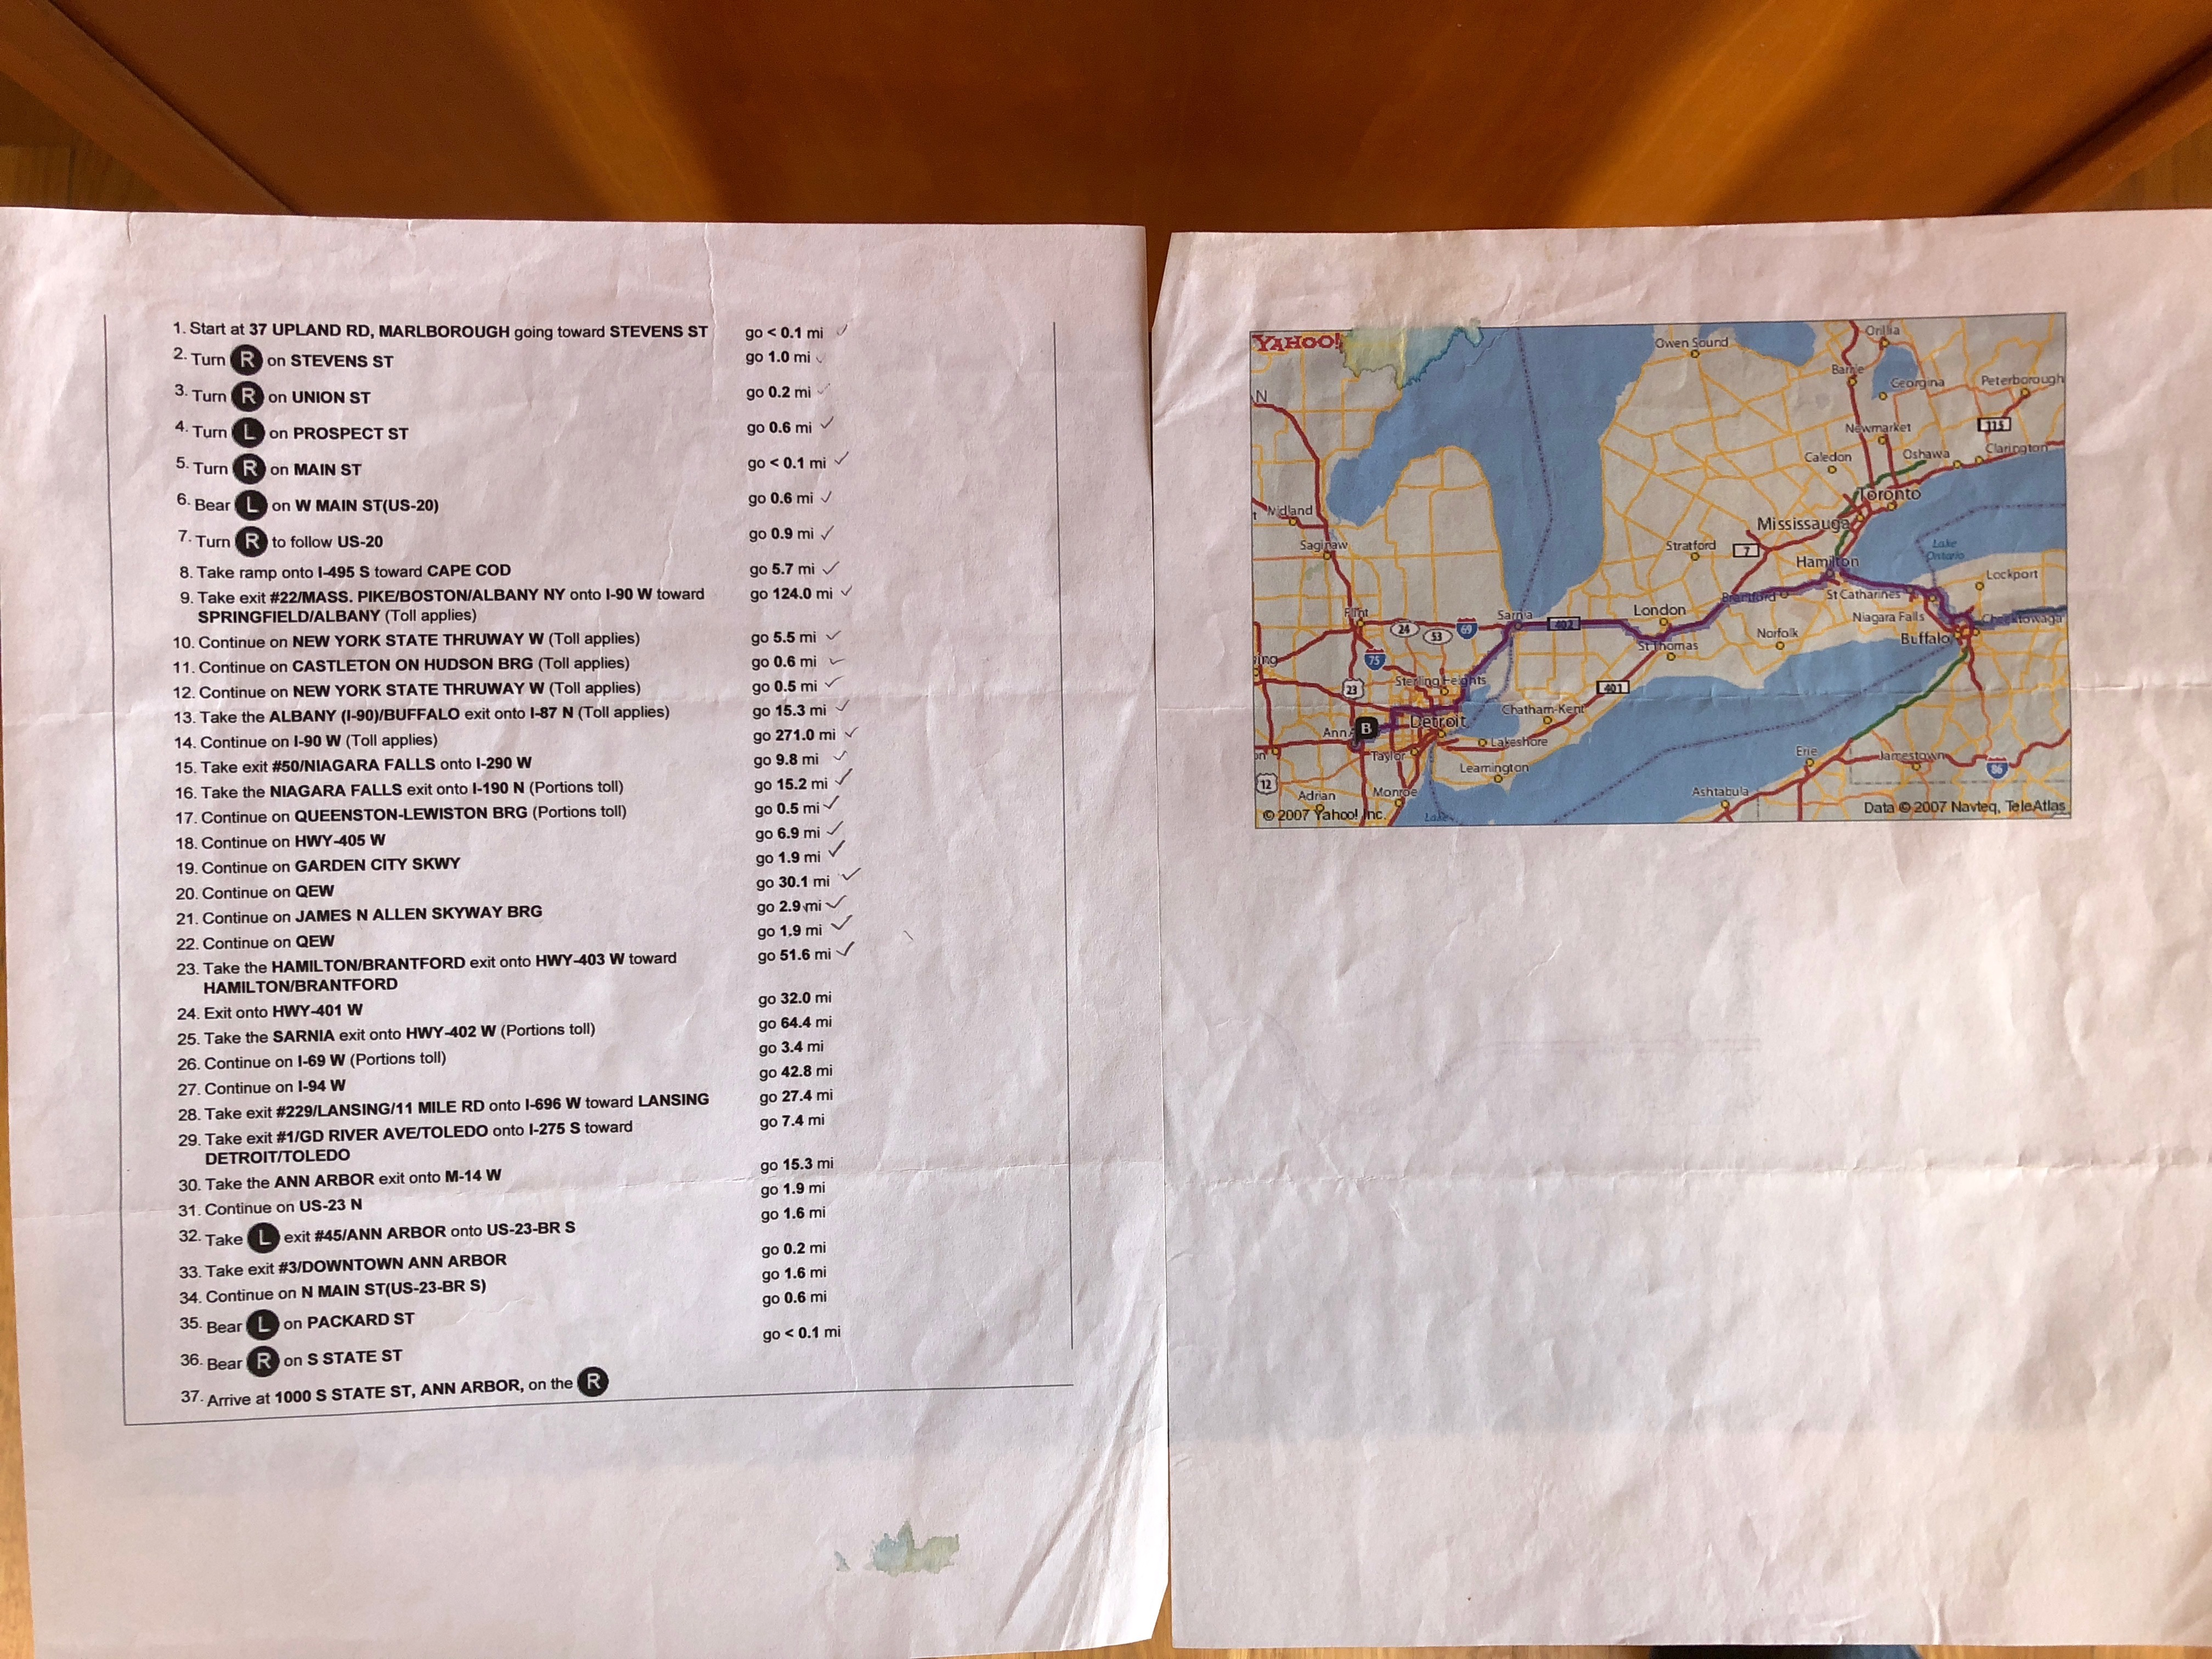 A printout of MapQuest directions showing 37 steps and a tiny, illegible map